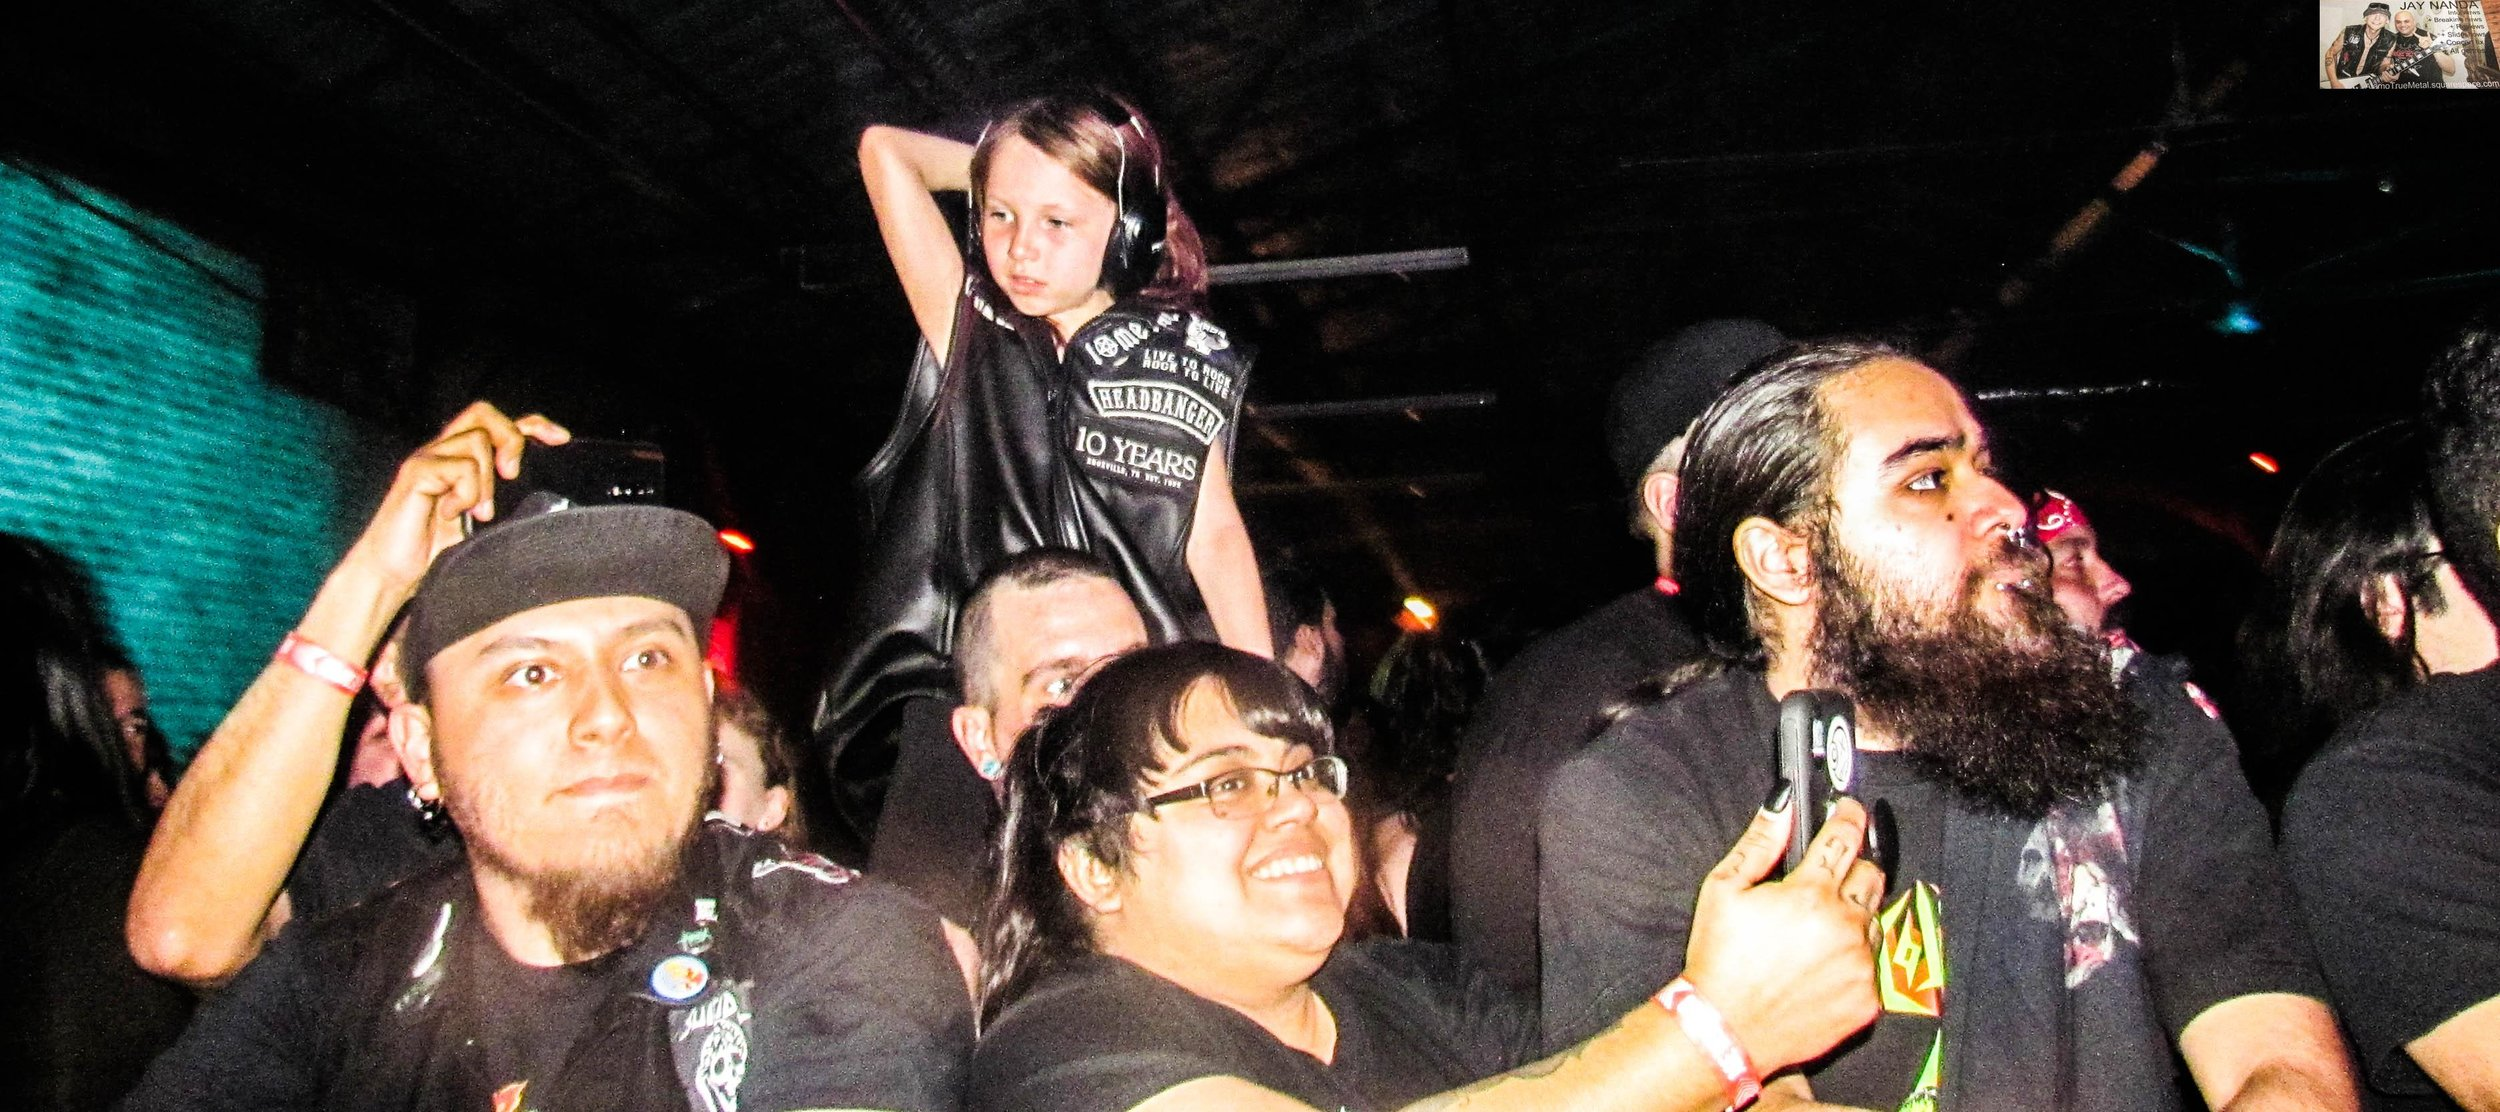 Lucy was eventually called up on stage along with her father by Agnostic Front and got to jam with the band for a song.